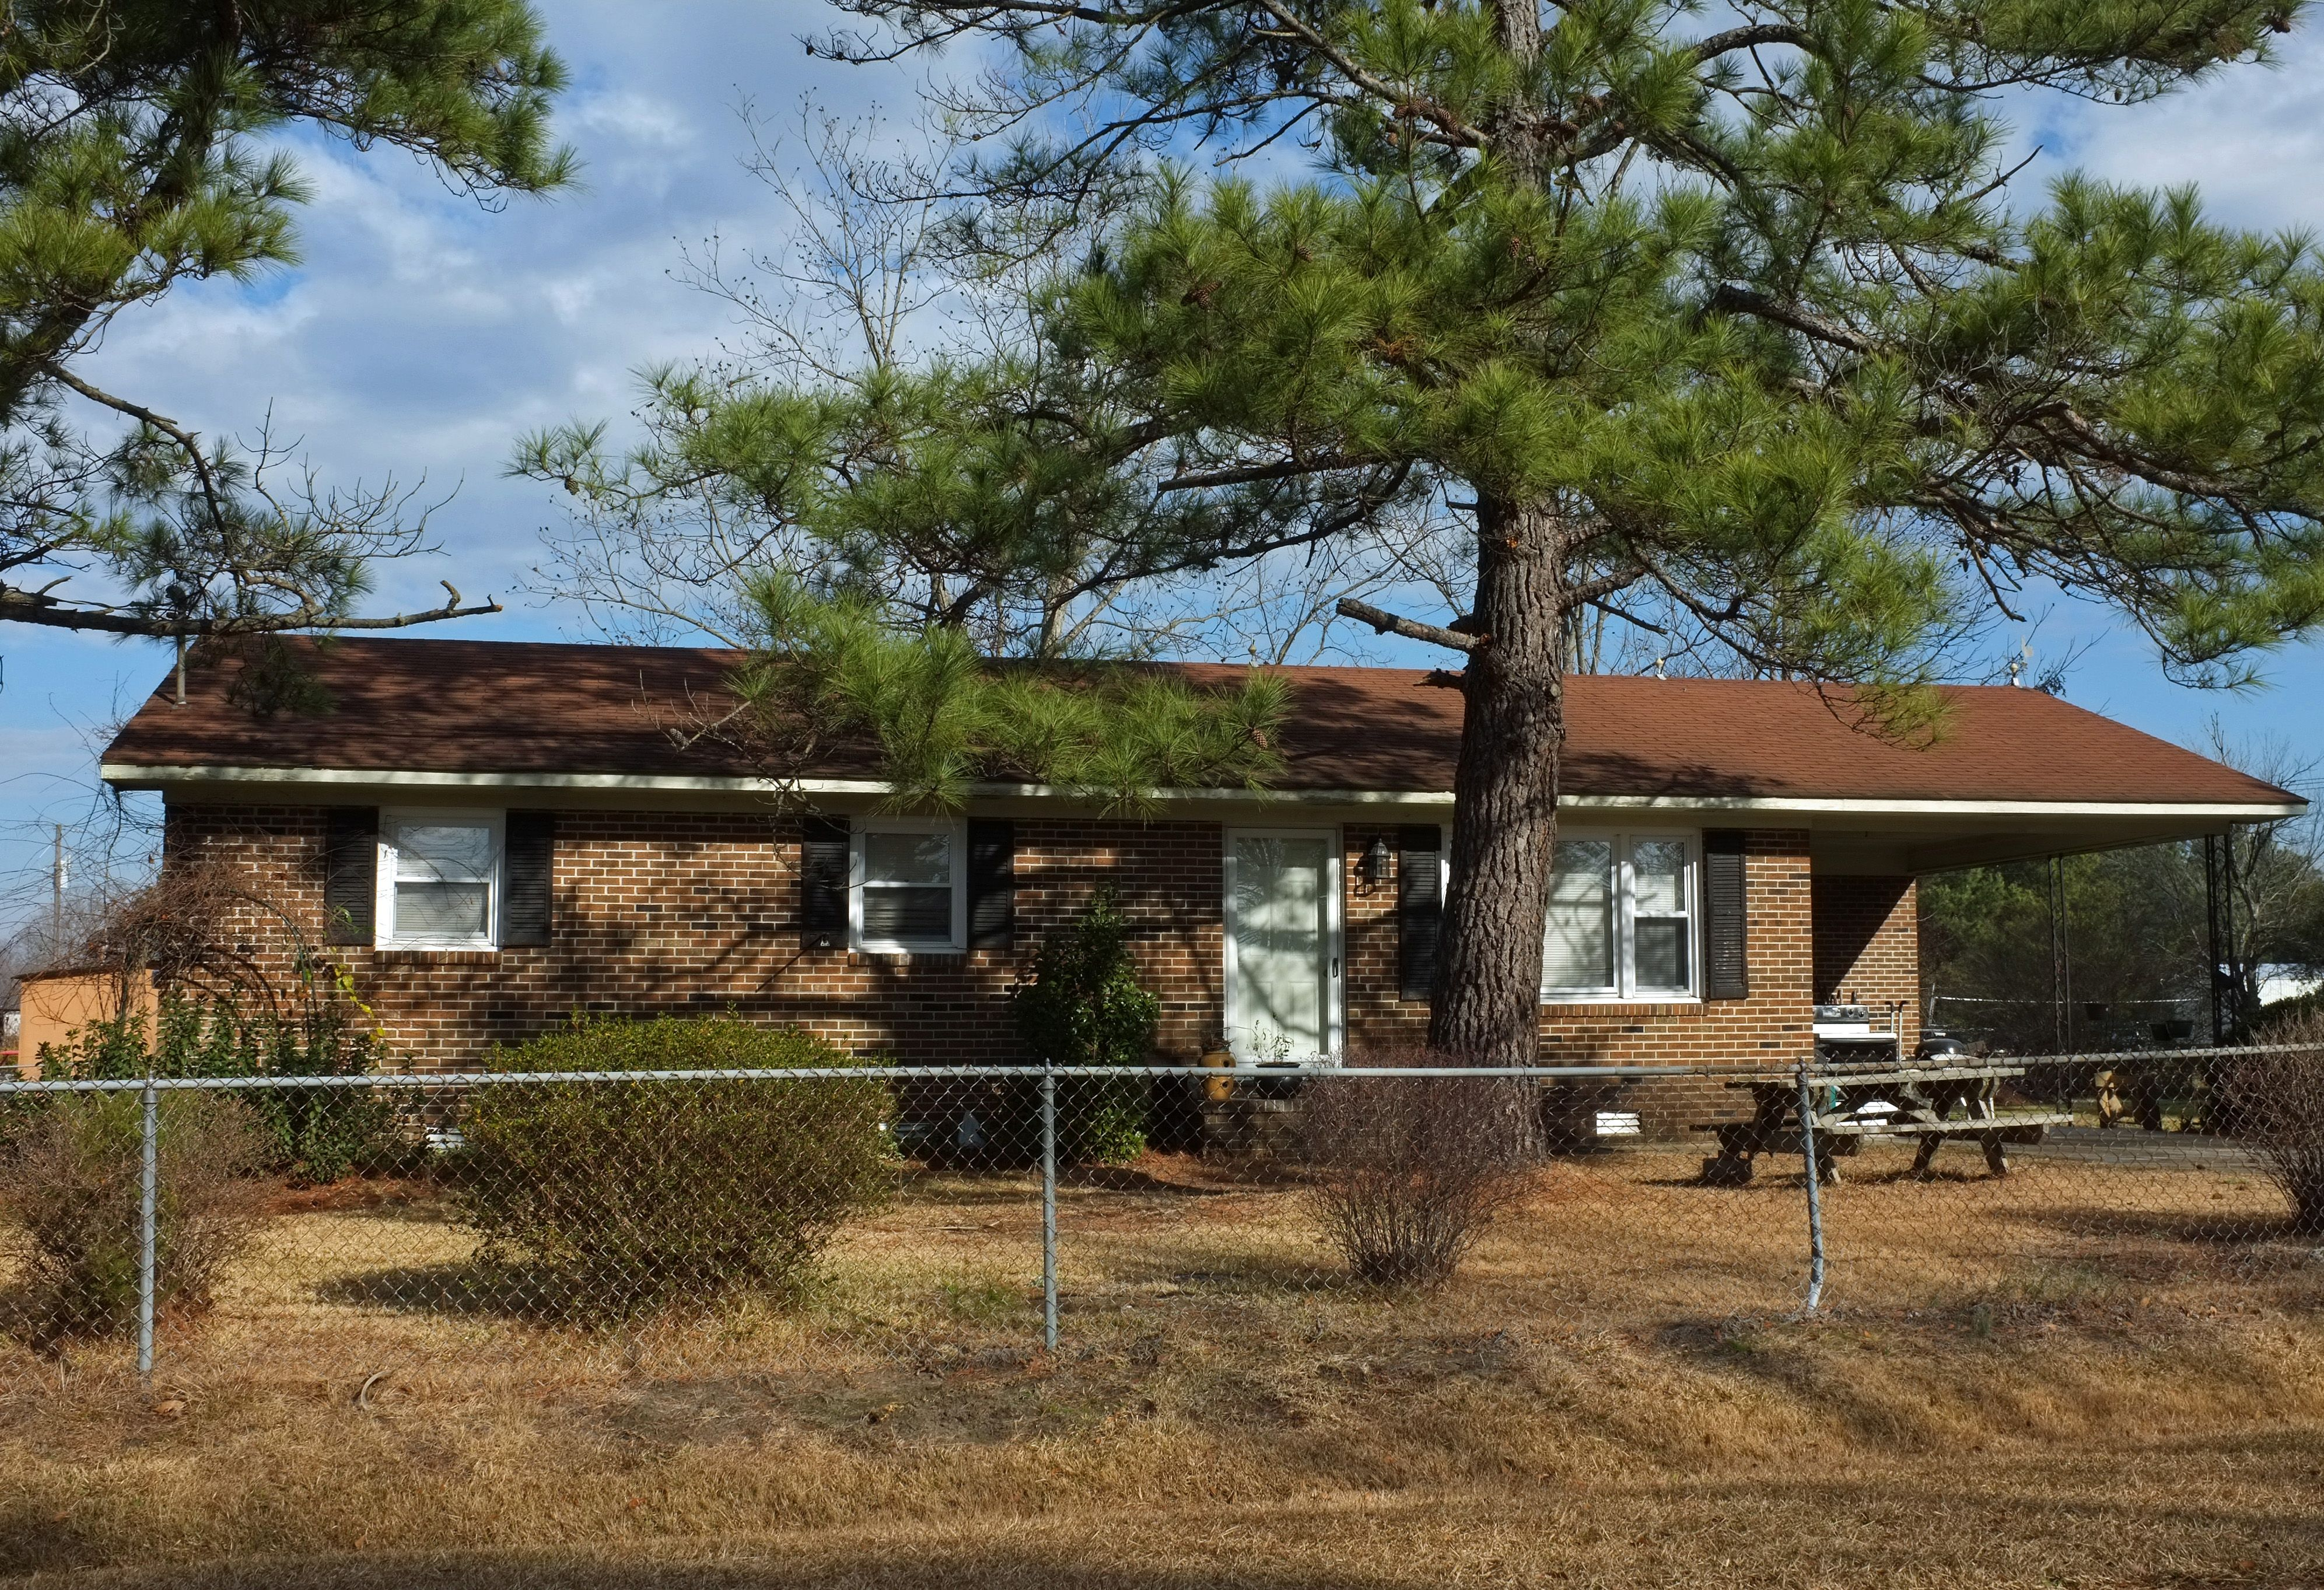 Brick Ranch Style Home With Carport Under Pine Trees Between Mid Century Modest Ranch